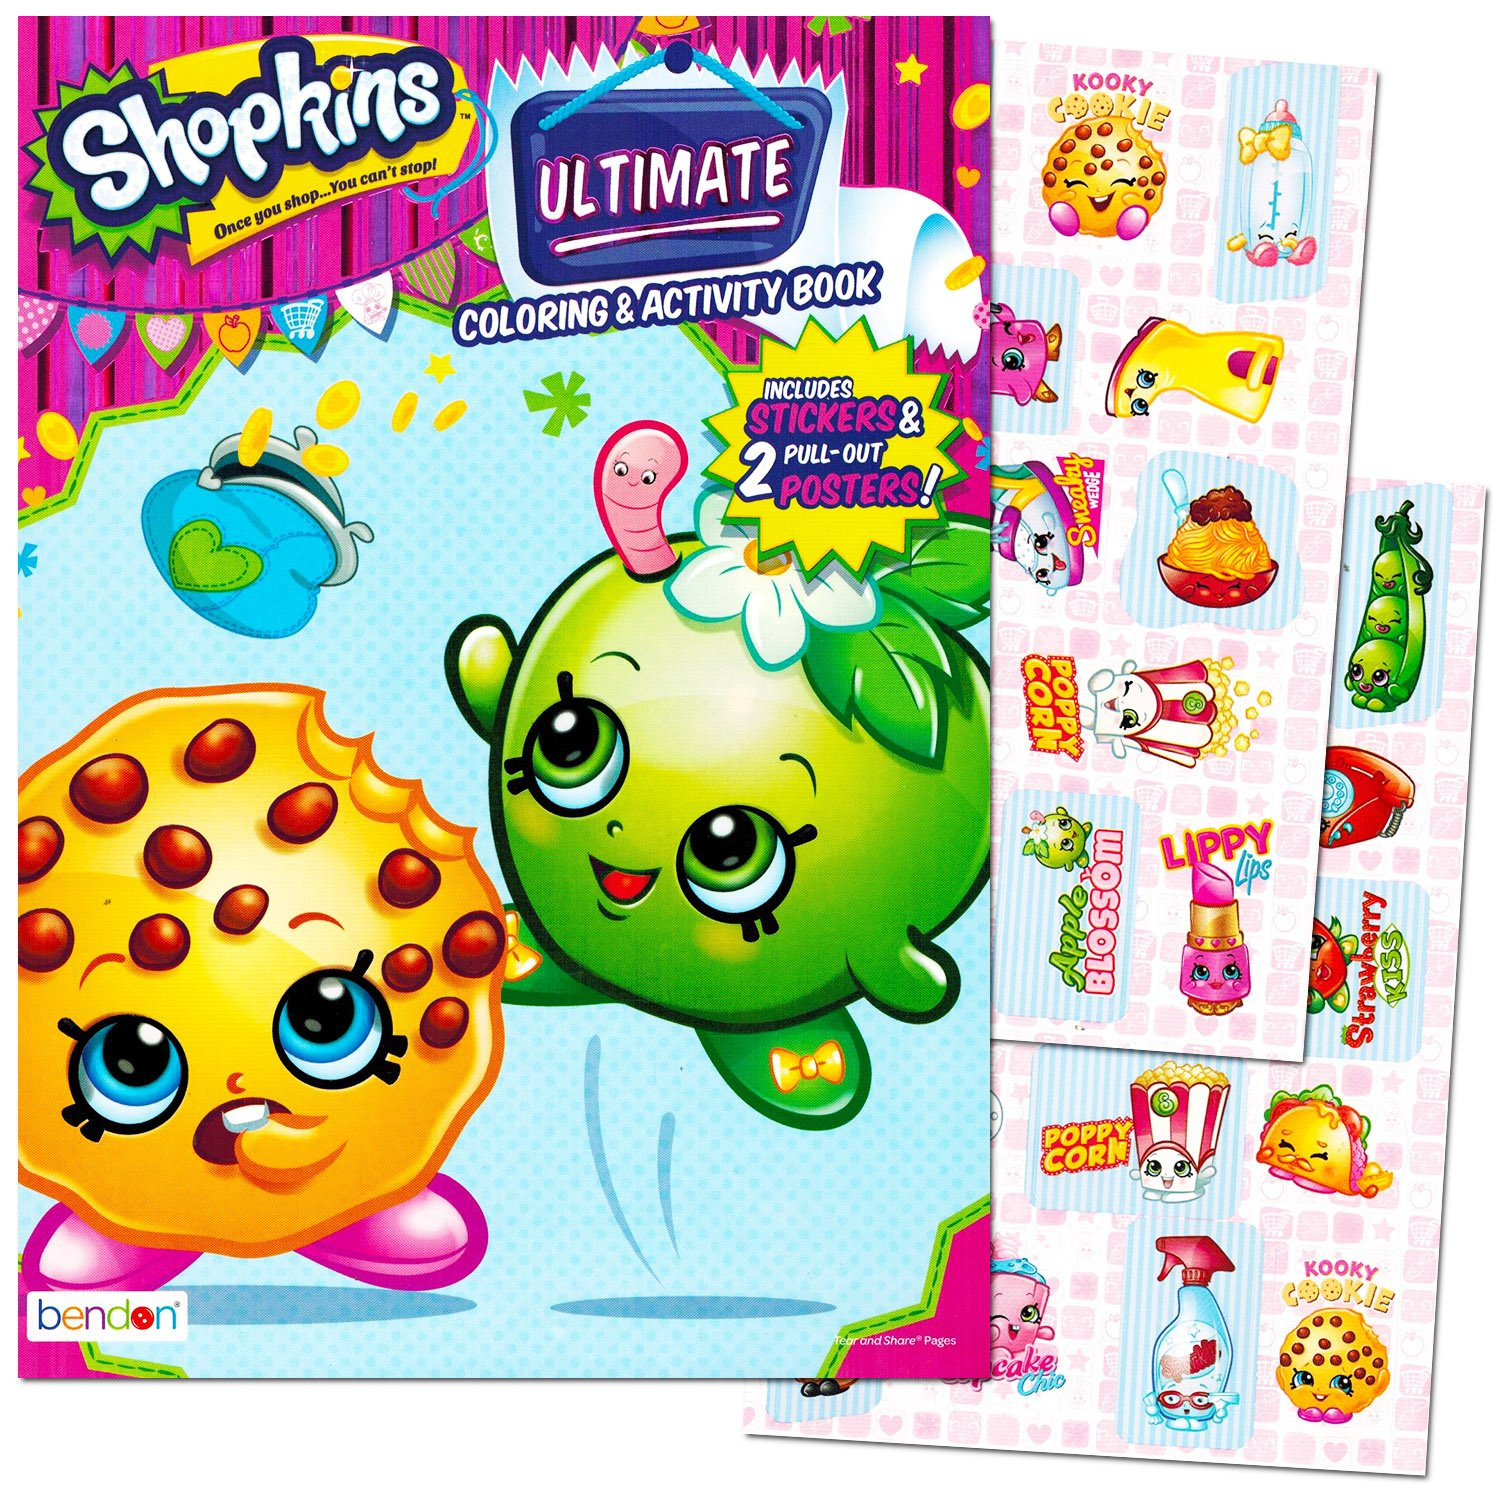 Amazon.com: Shopkins Coloring and Activity Book with Stickers and ...